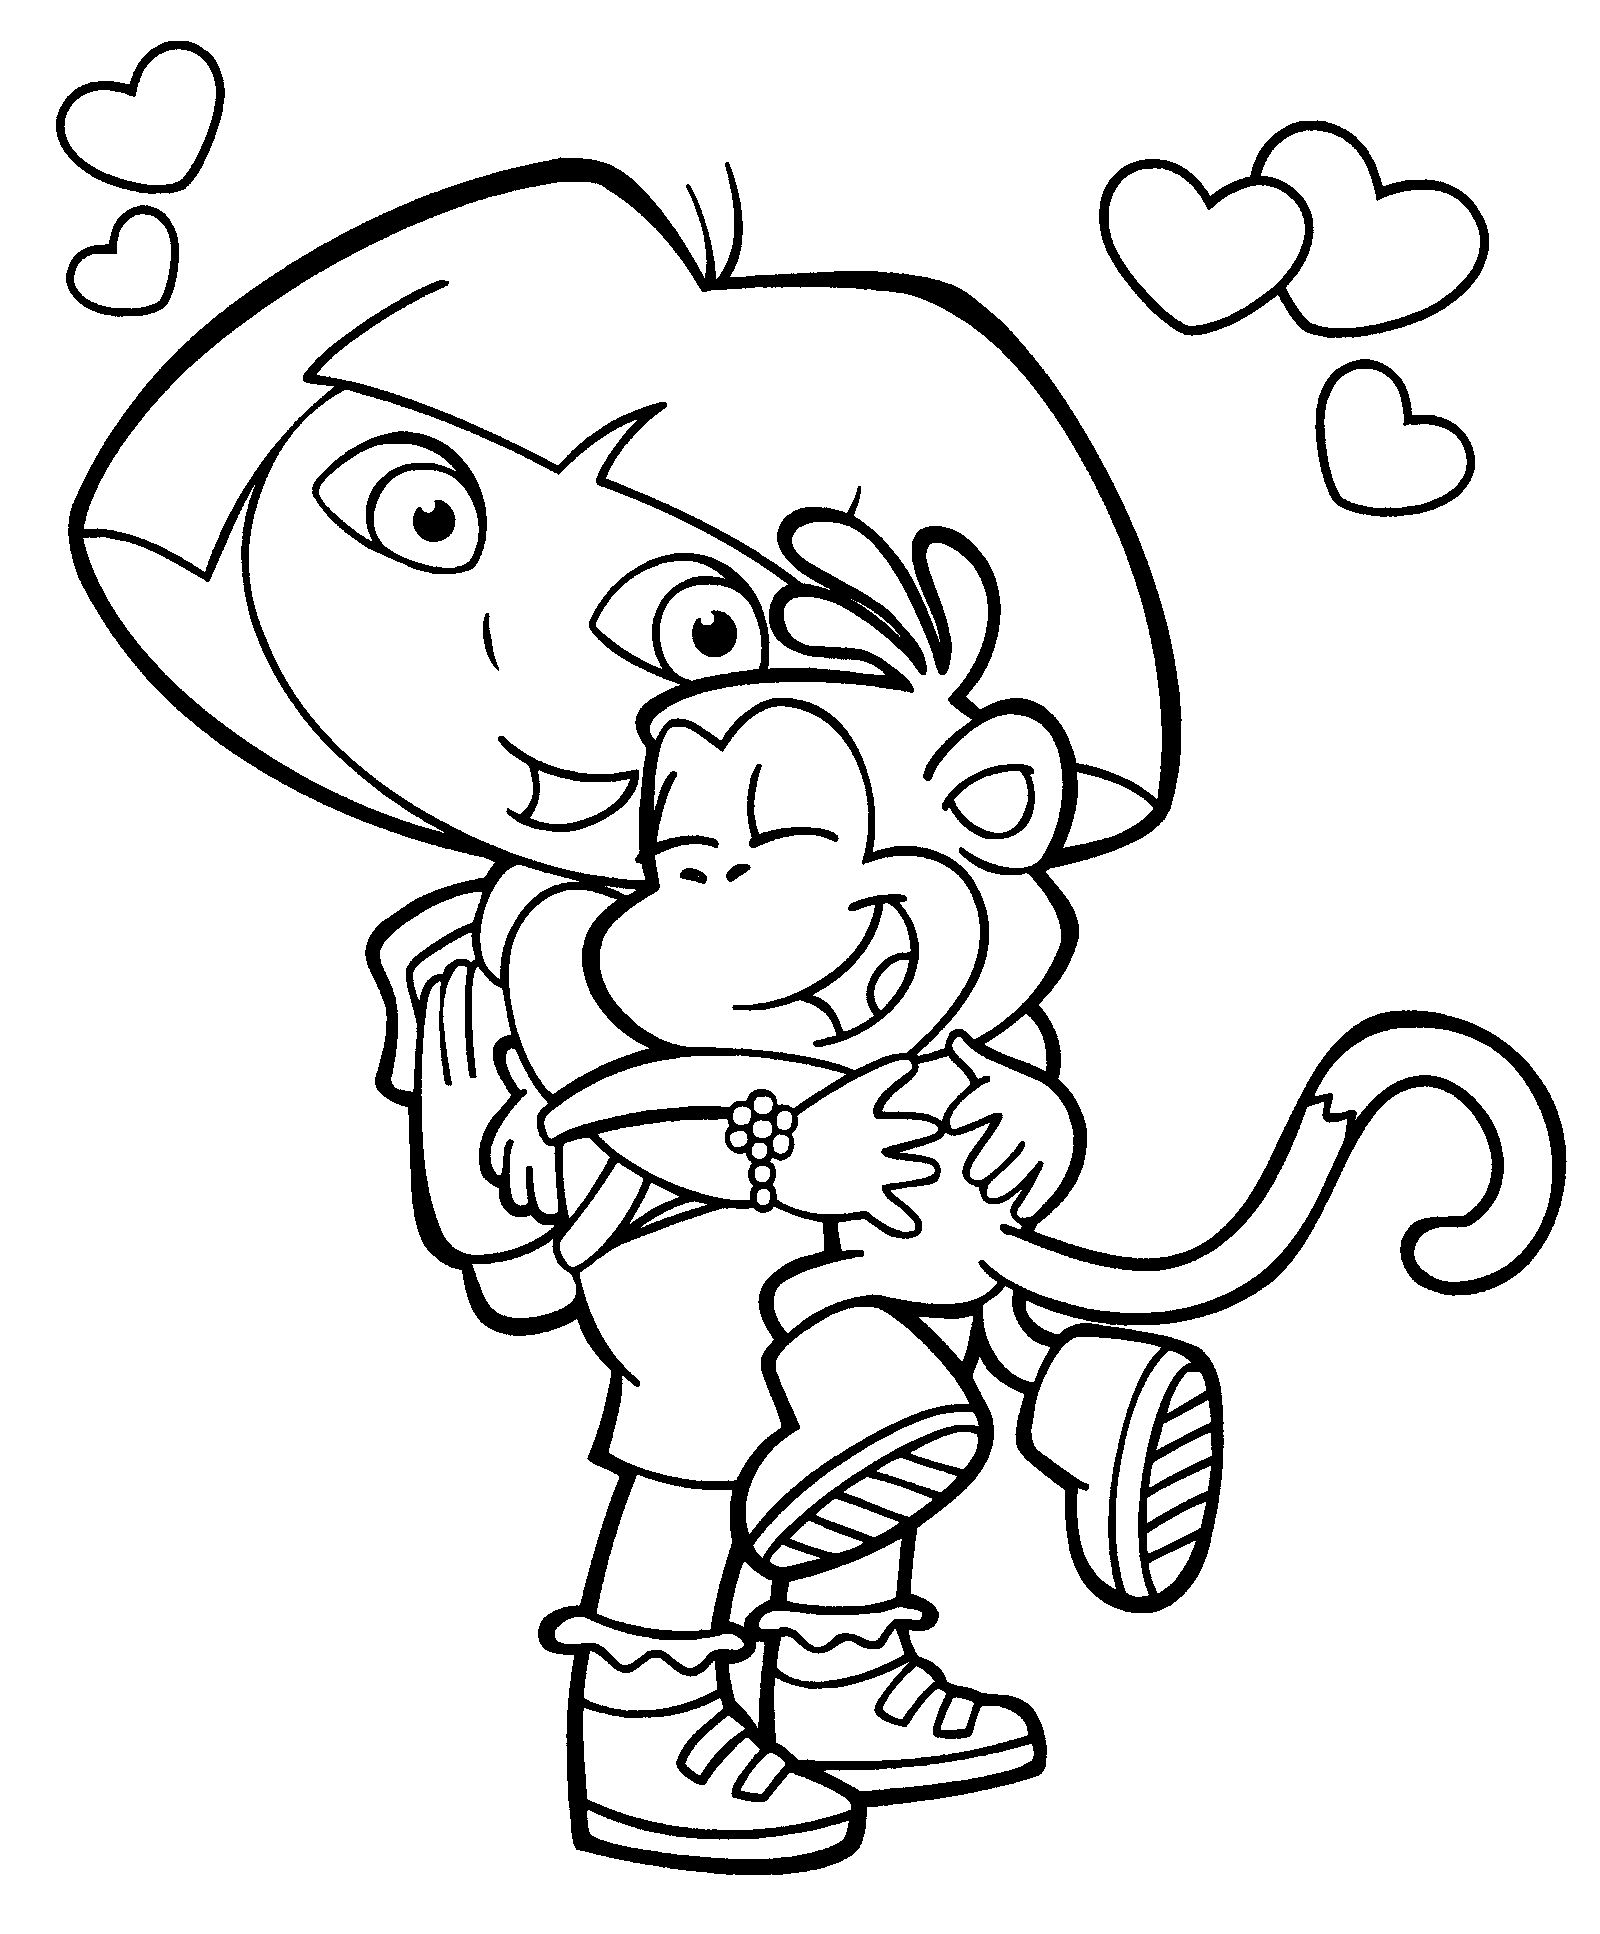 Free coloring pages hamsters - Dora The Explorer Stars Coloring Pages Dora The Explorer On Dora Coloring Games